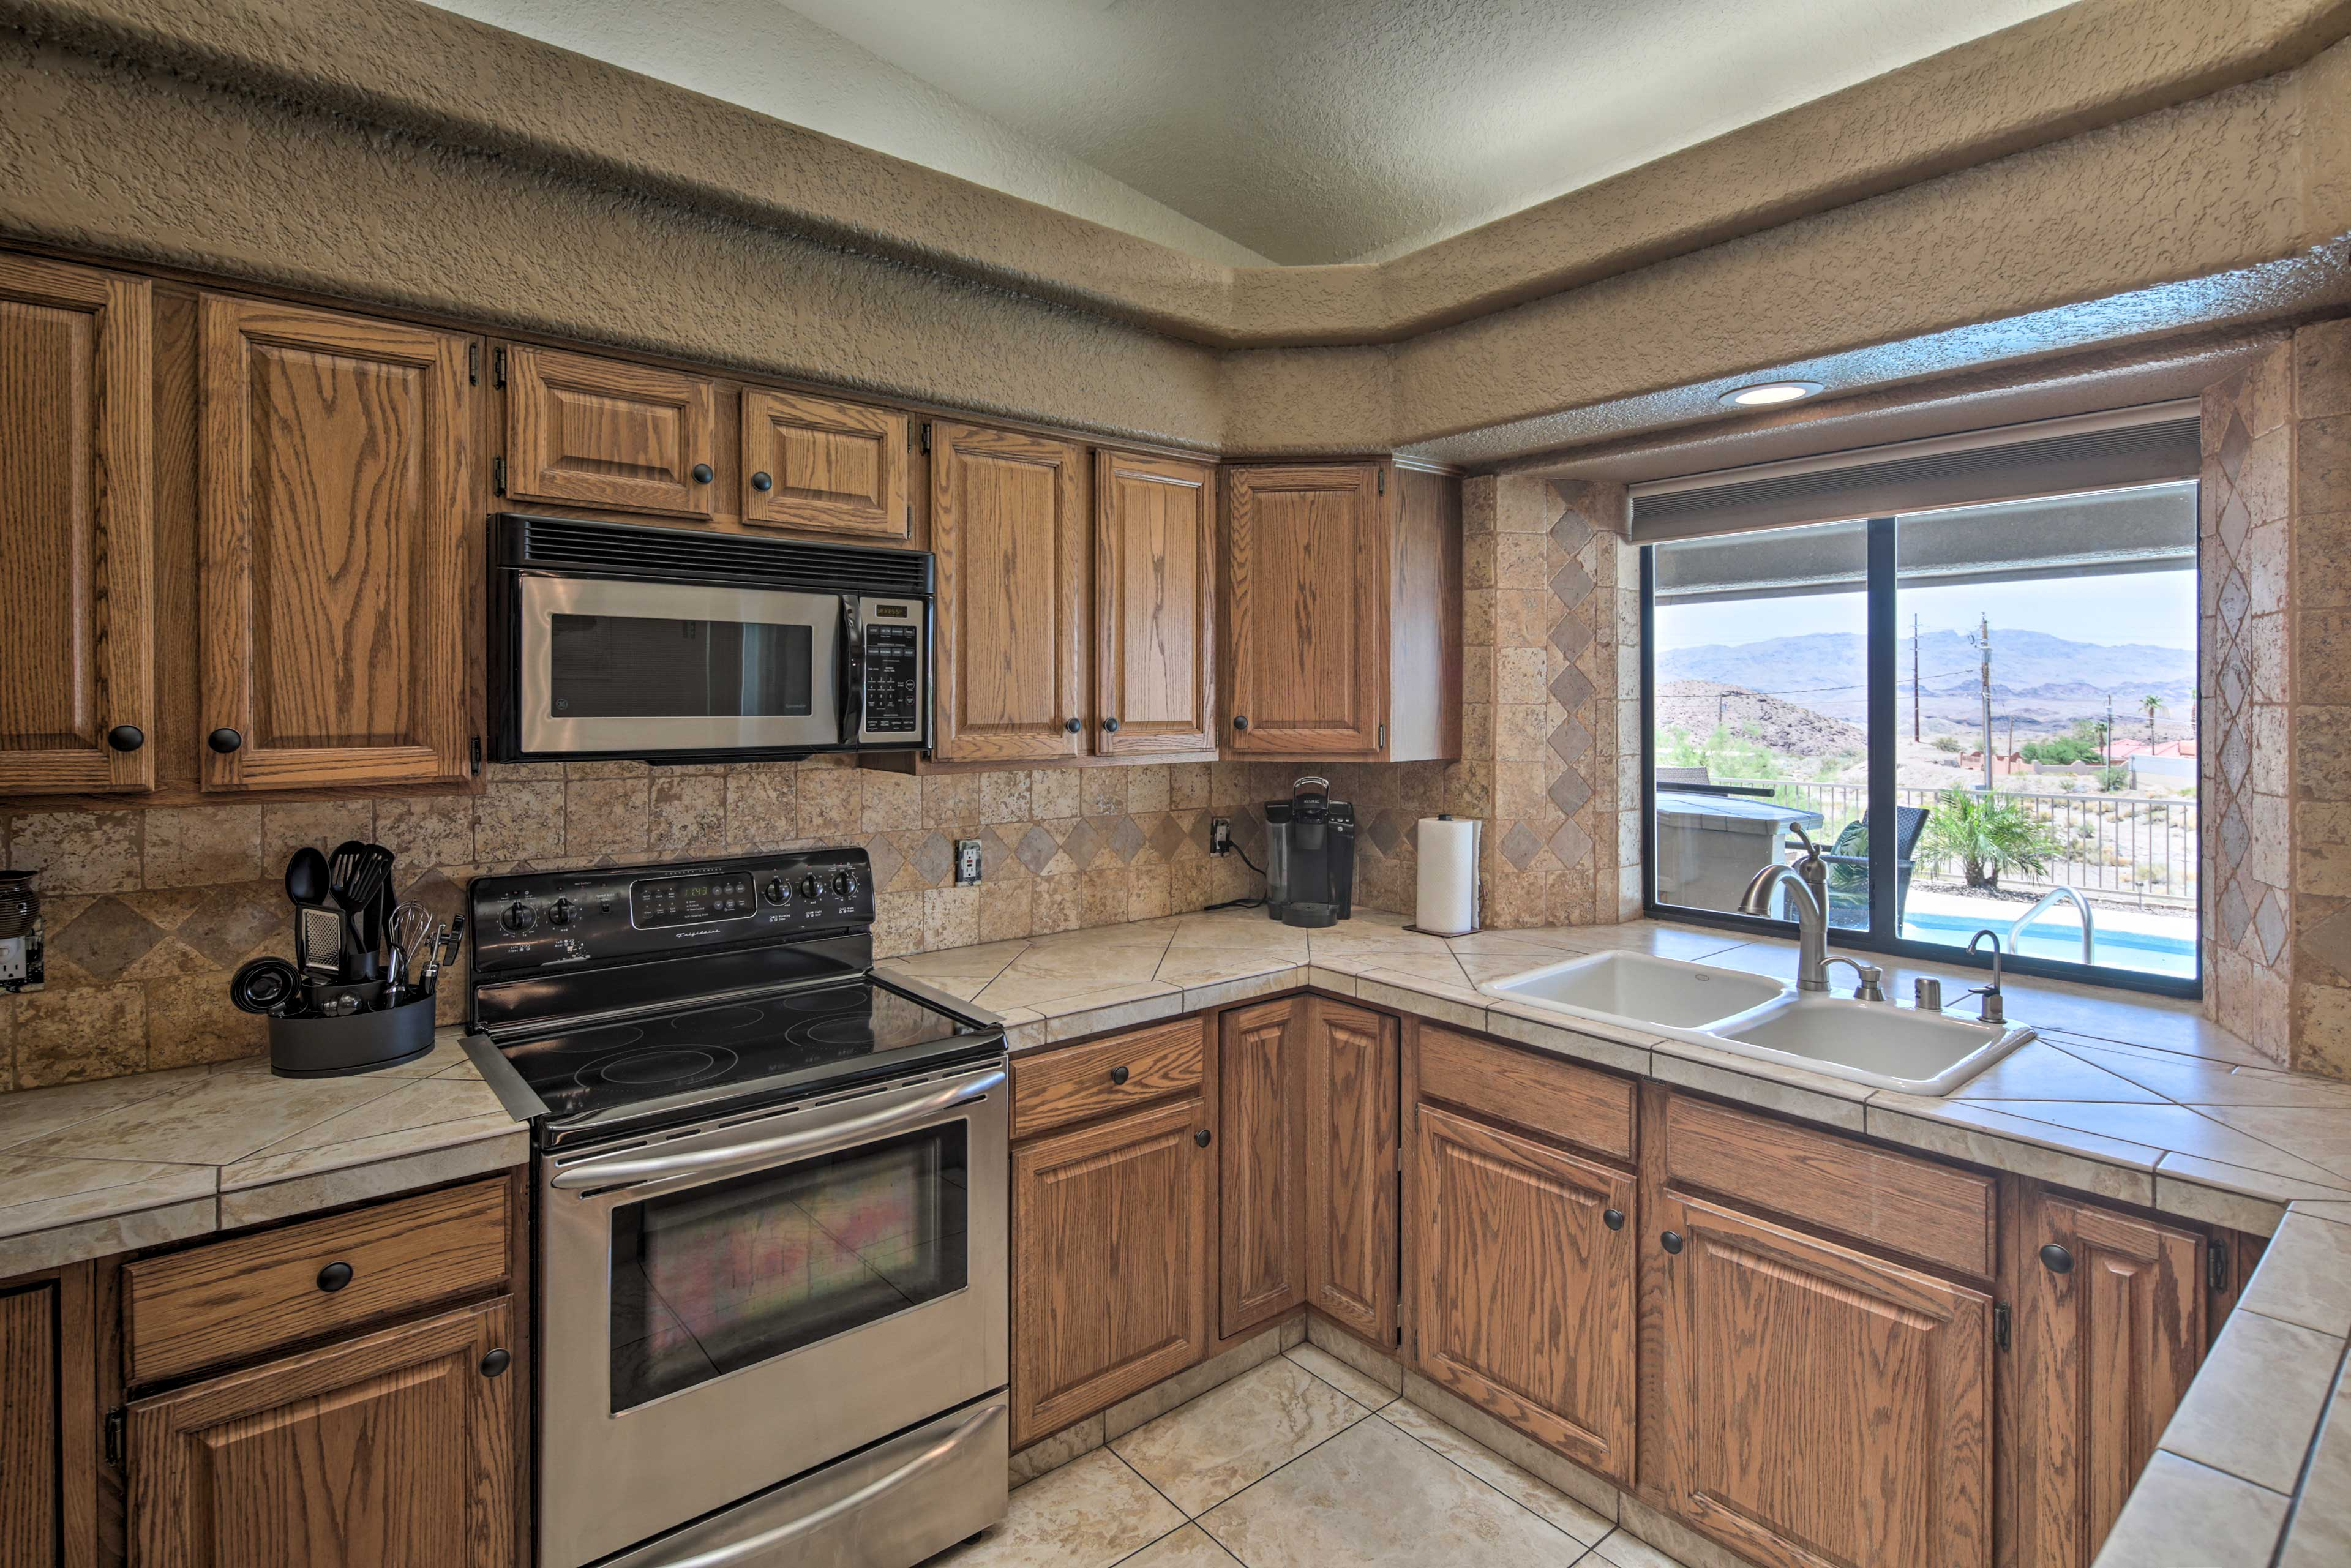 The kitchen is fully equipped, even boasting mountain views.